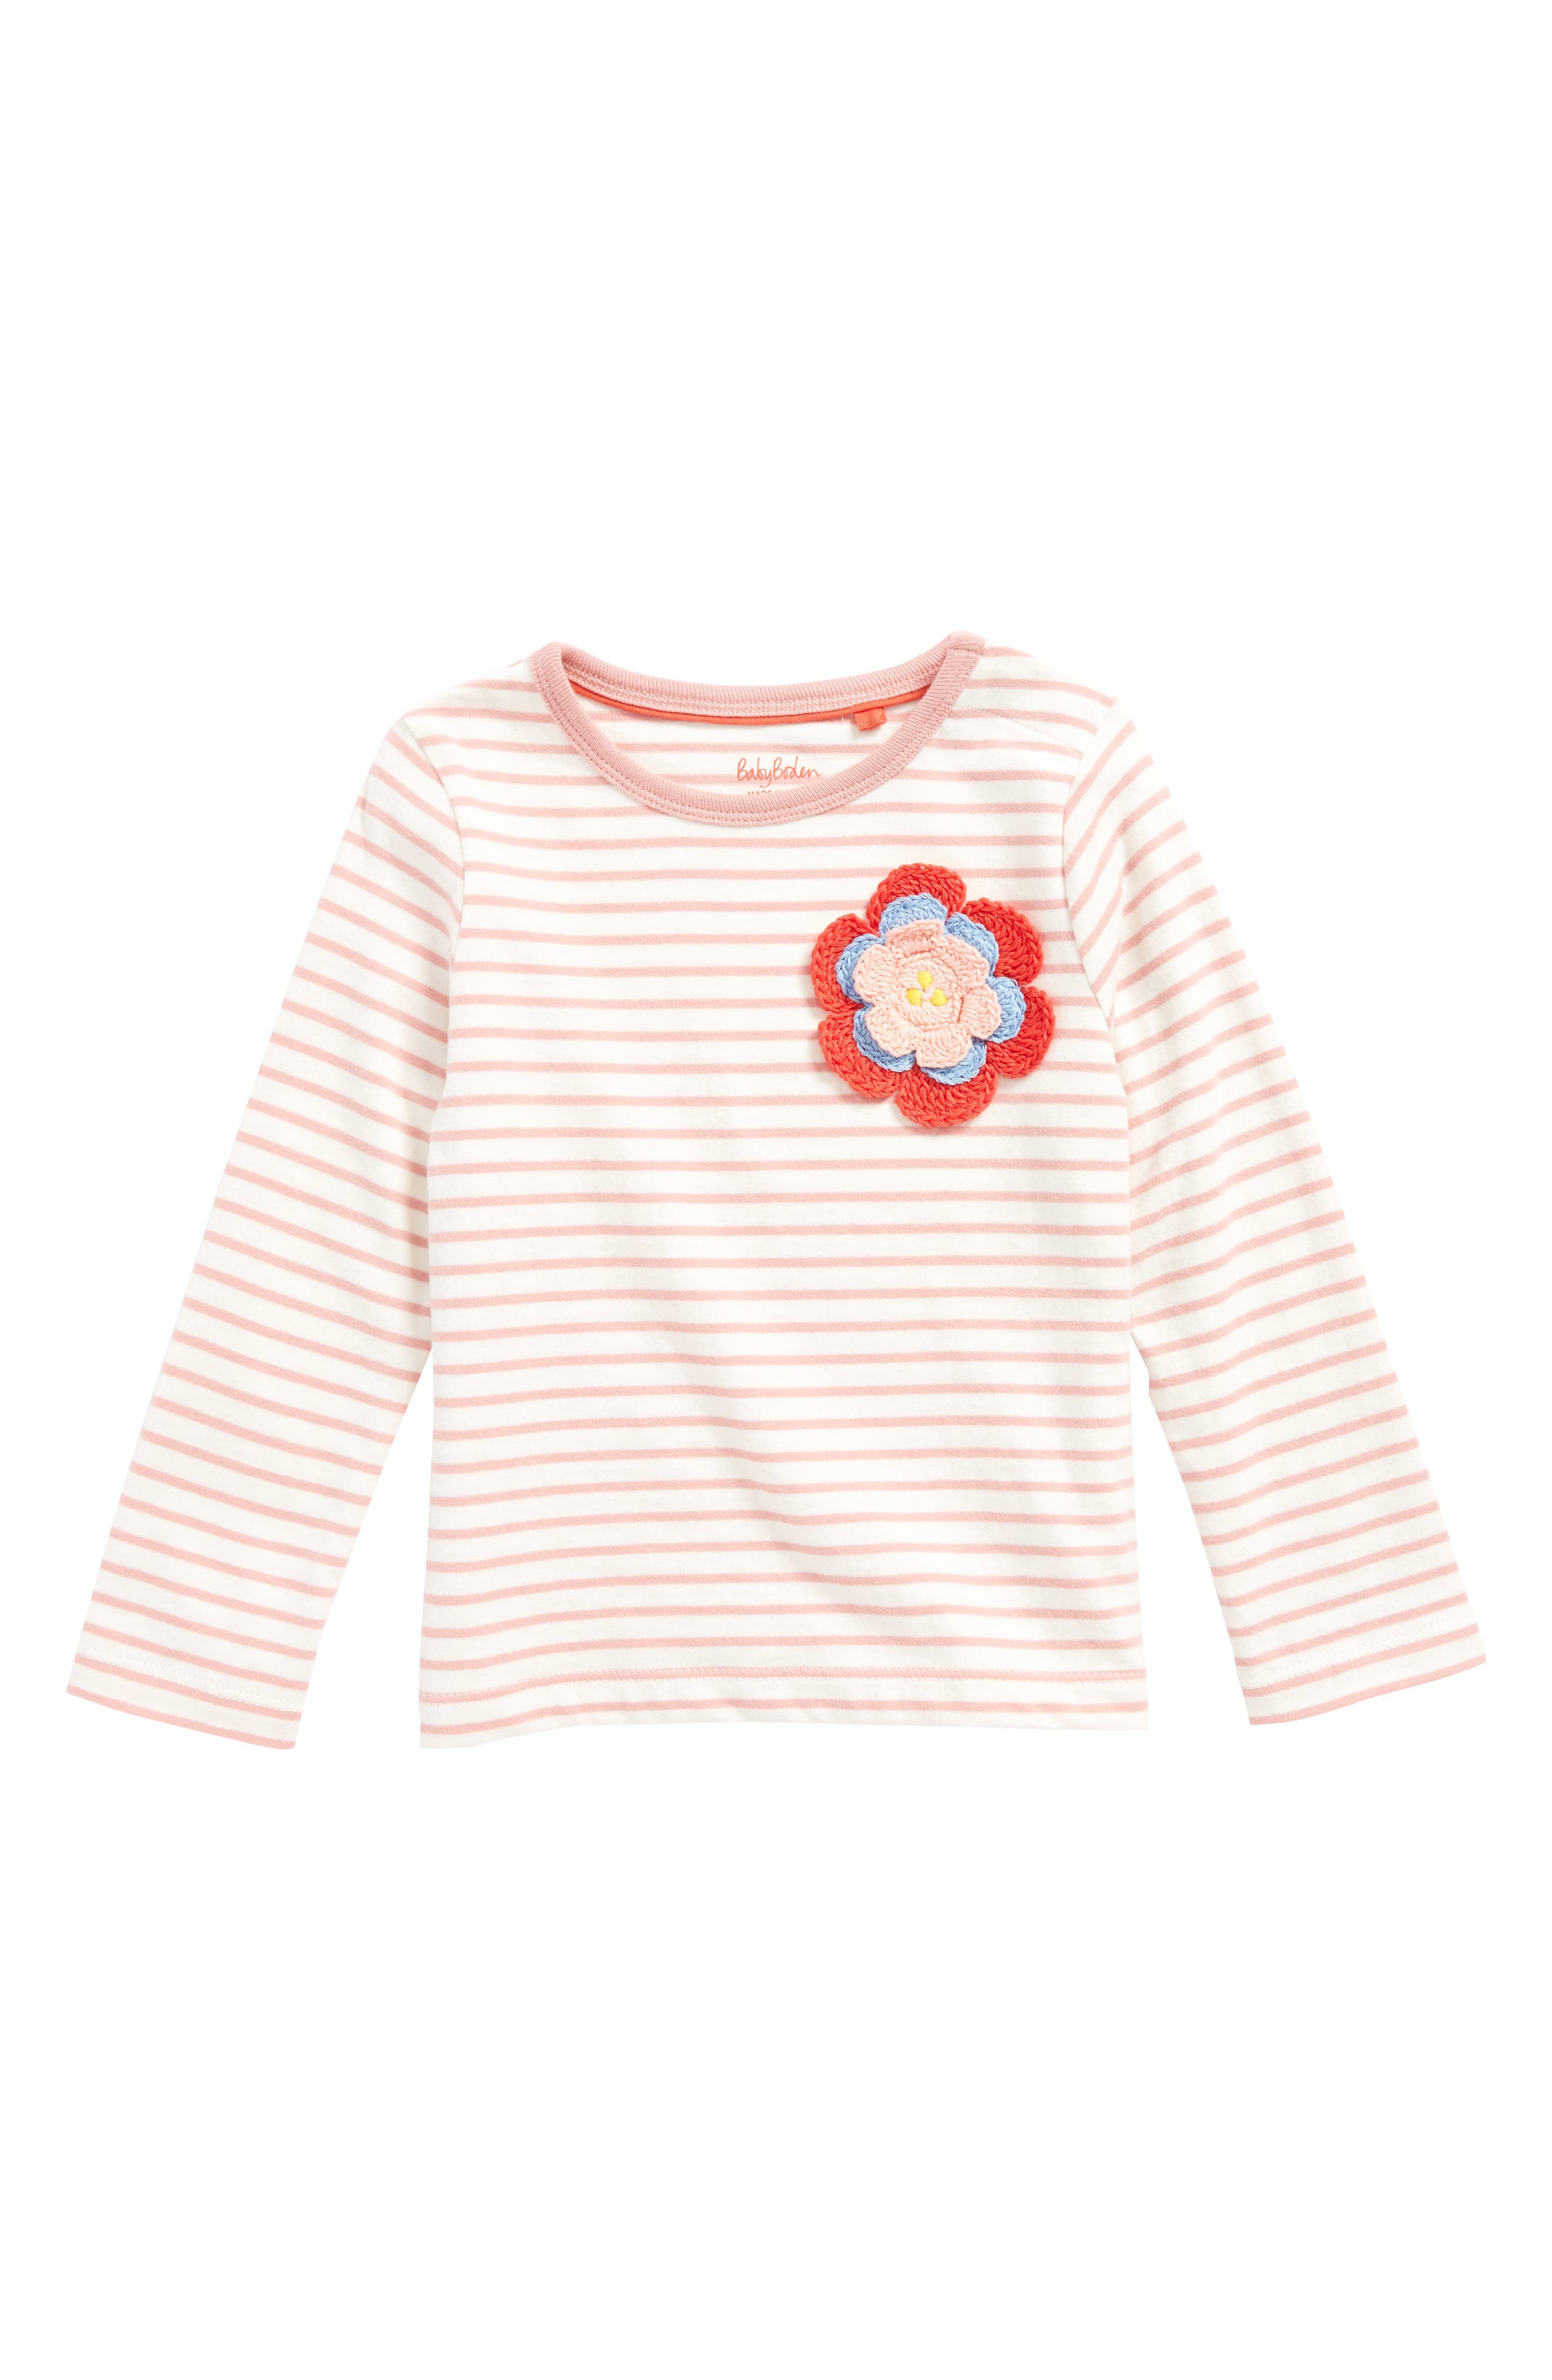 Stripy Crochet Appliqué Tee,                         Main,                         color, Almond Blossom Pink